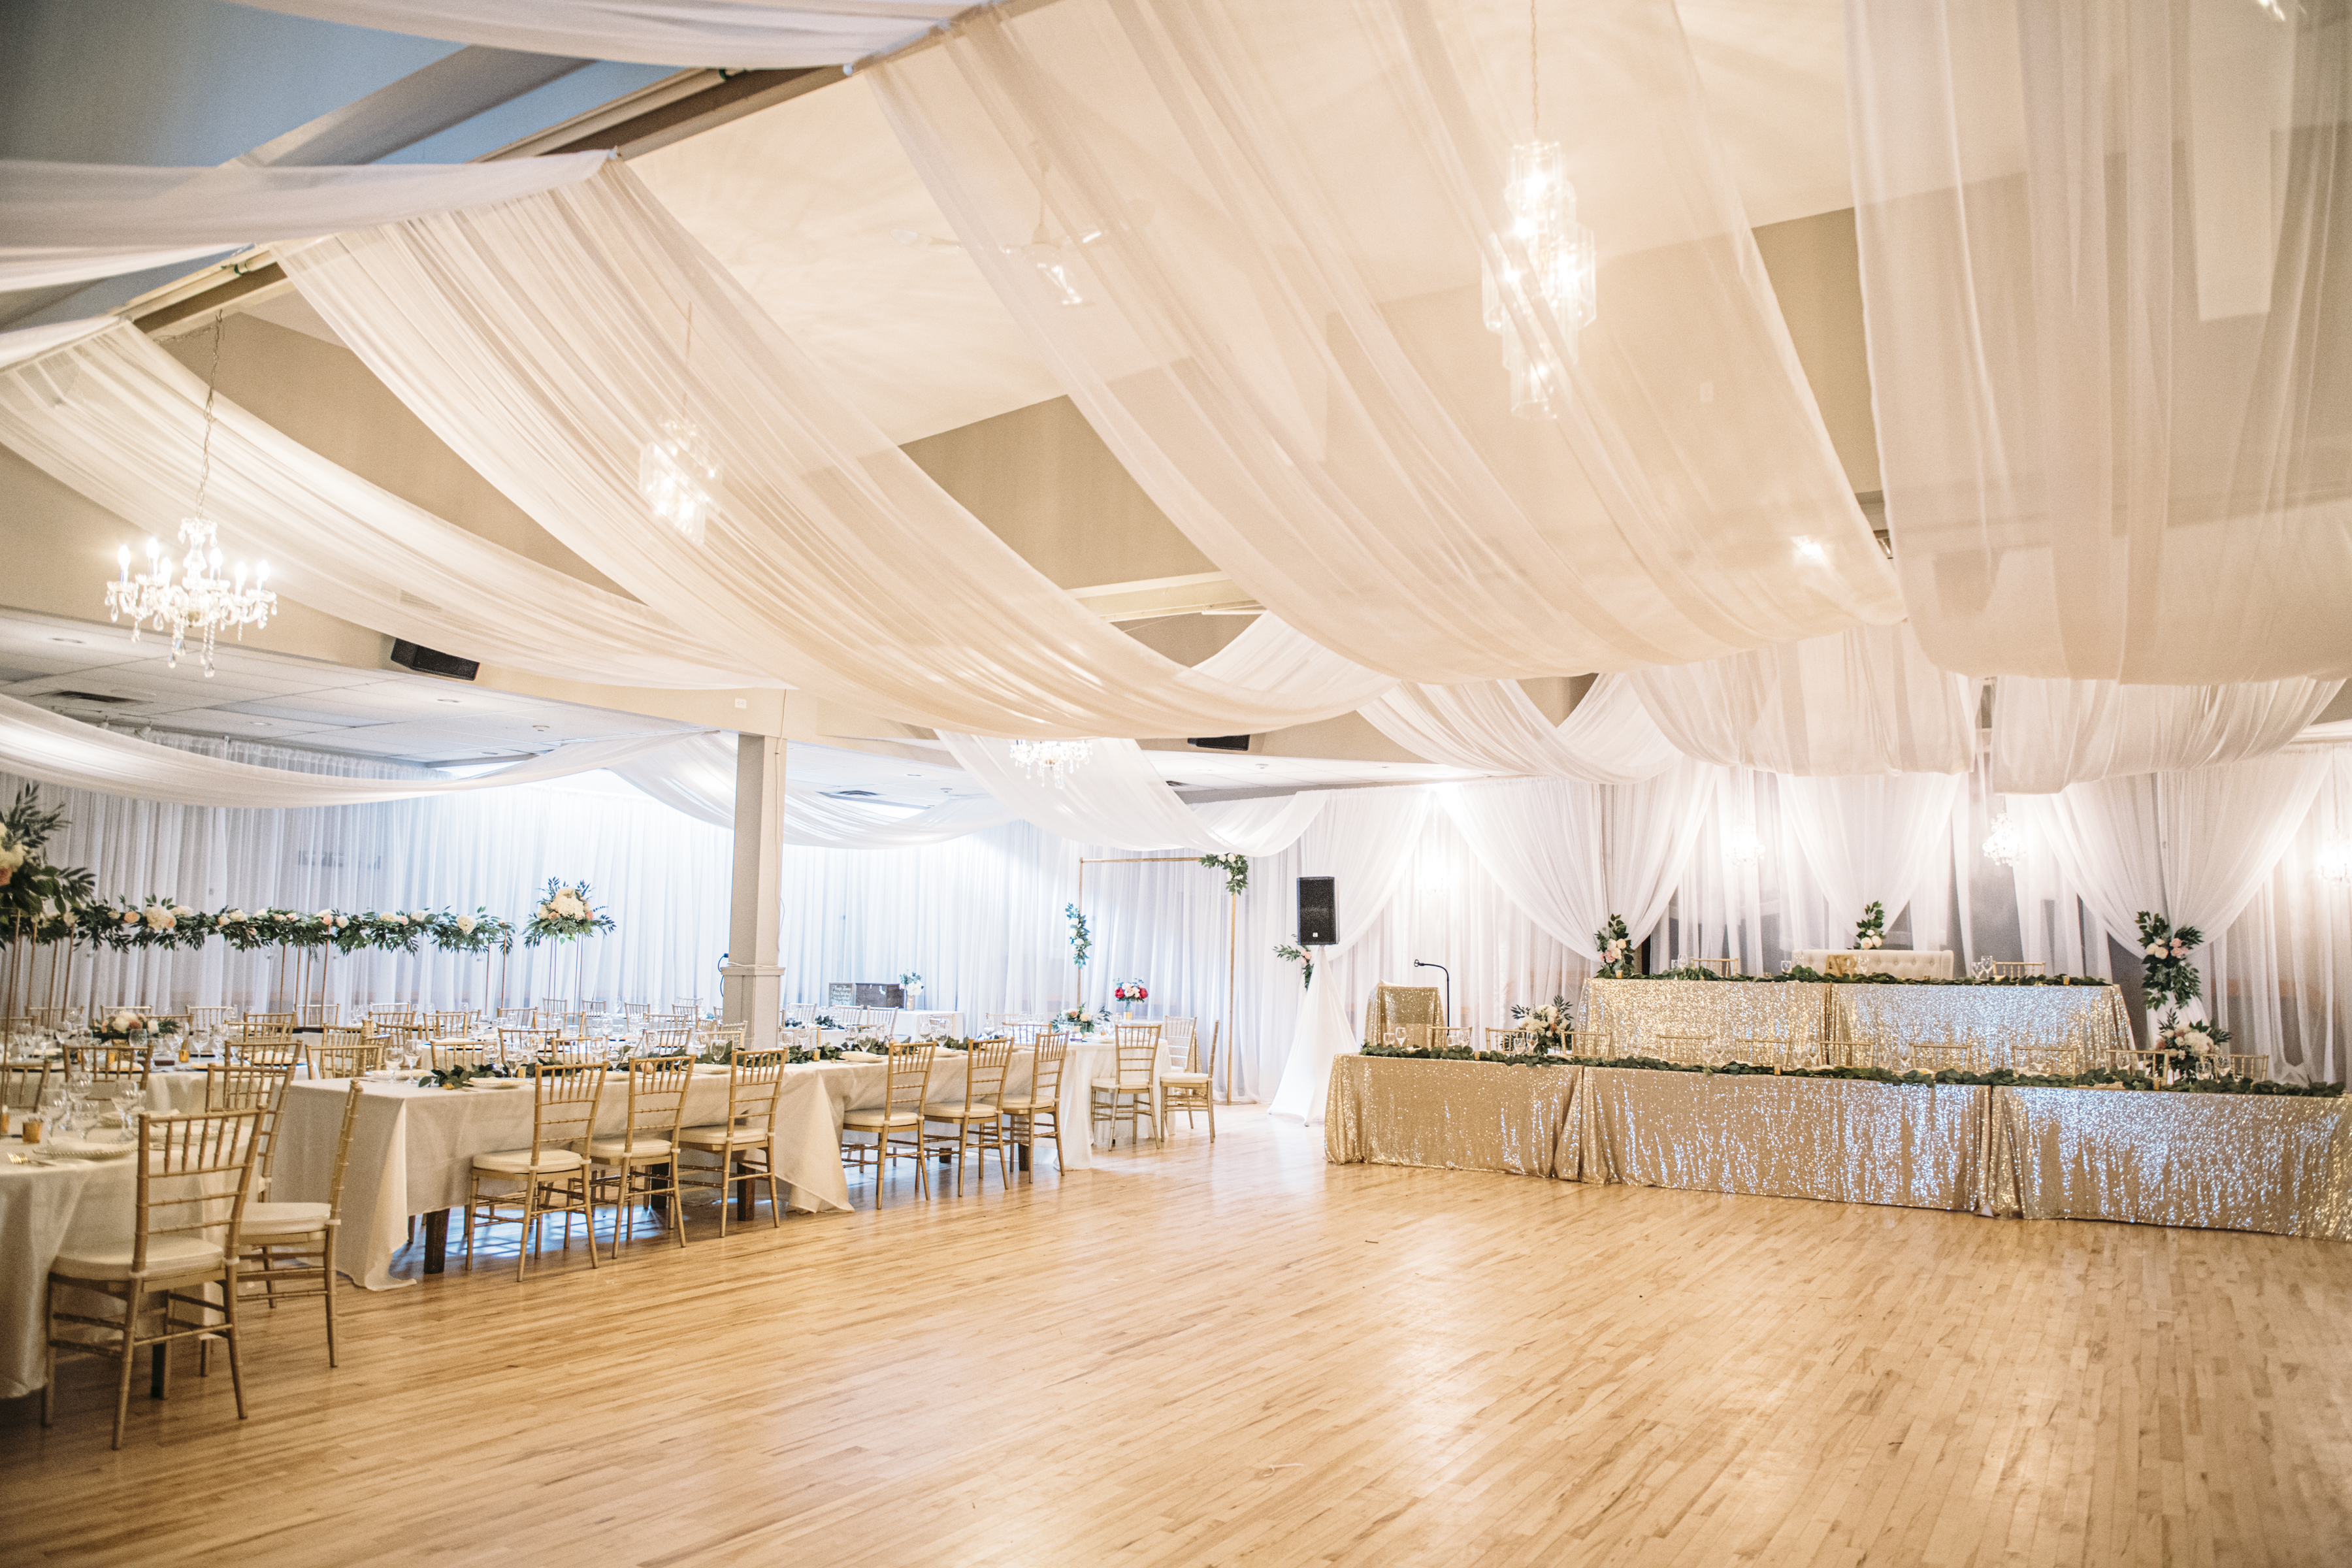 Parallel Ceiling Draping Panels Valley Tent Party Rentals